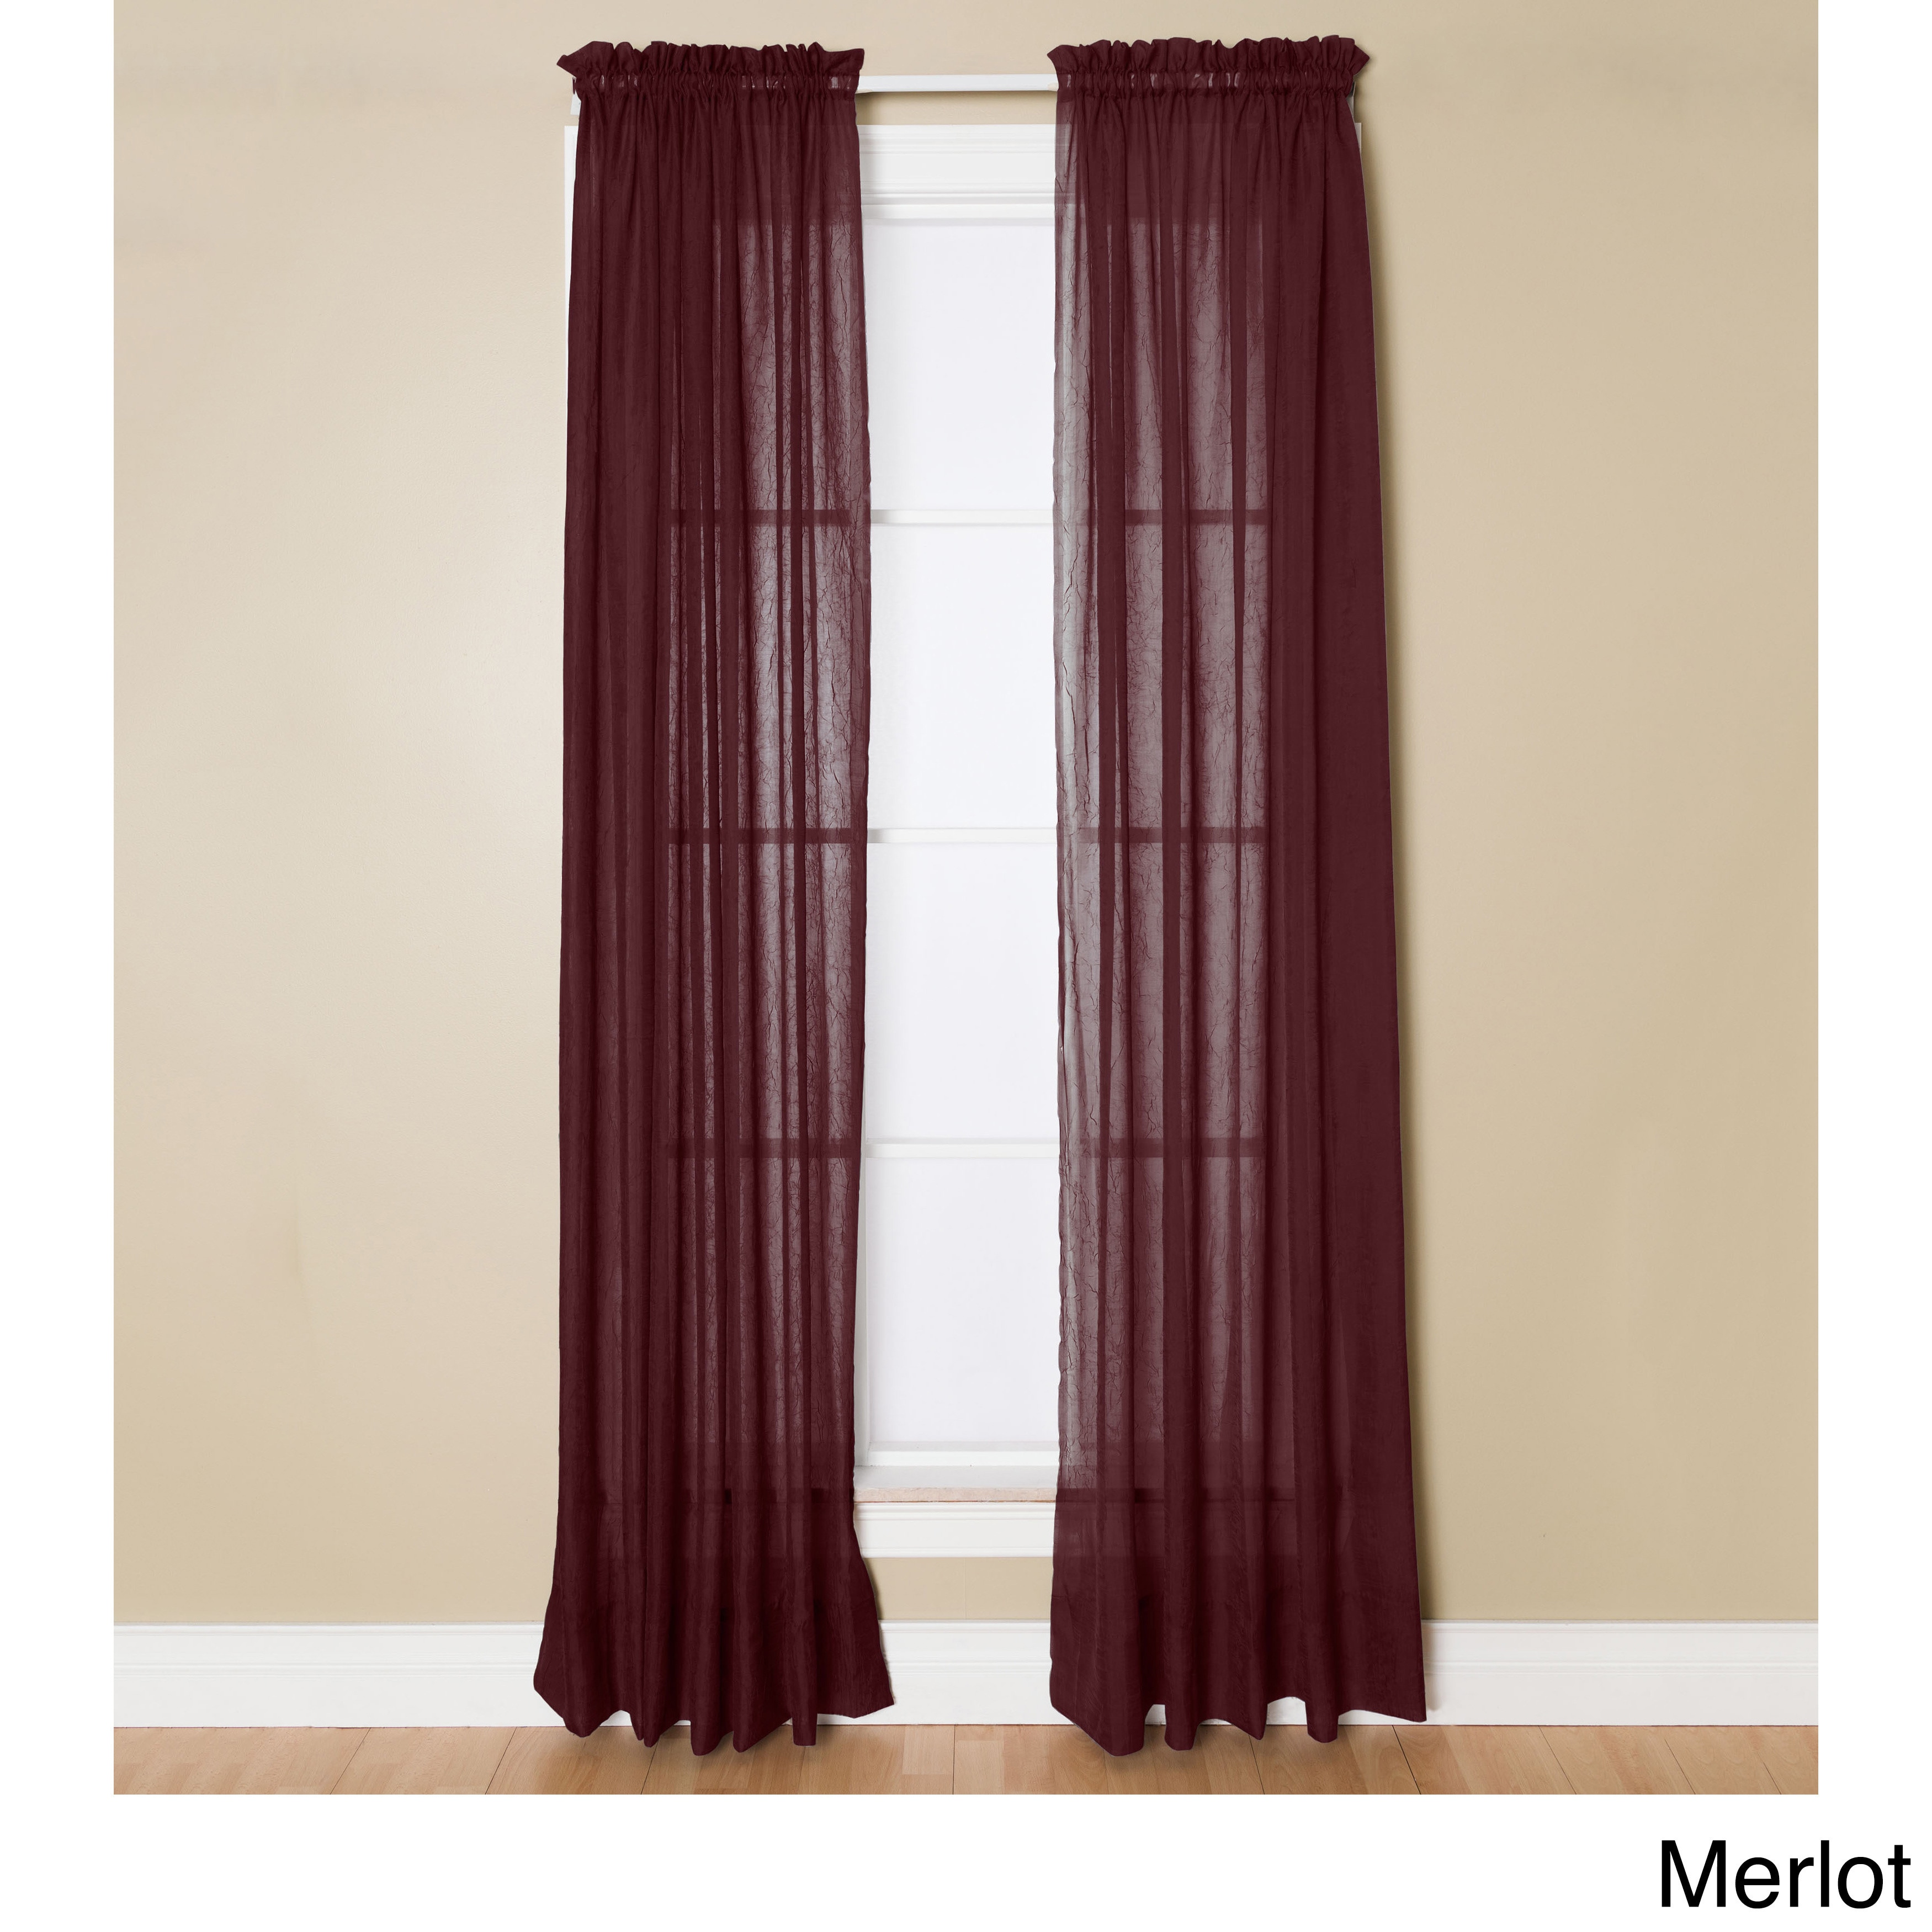 Miller Curtains Preston 63-inch Rod Pocket Sheer Curtain